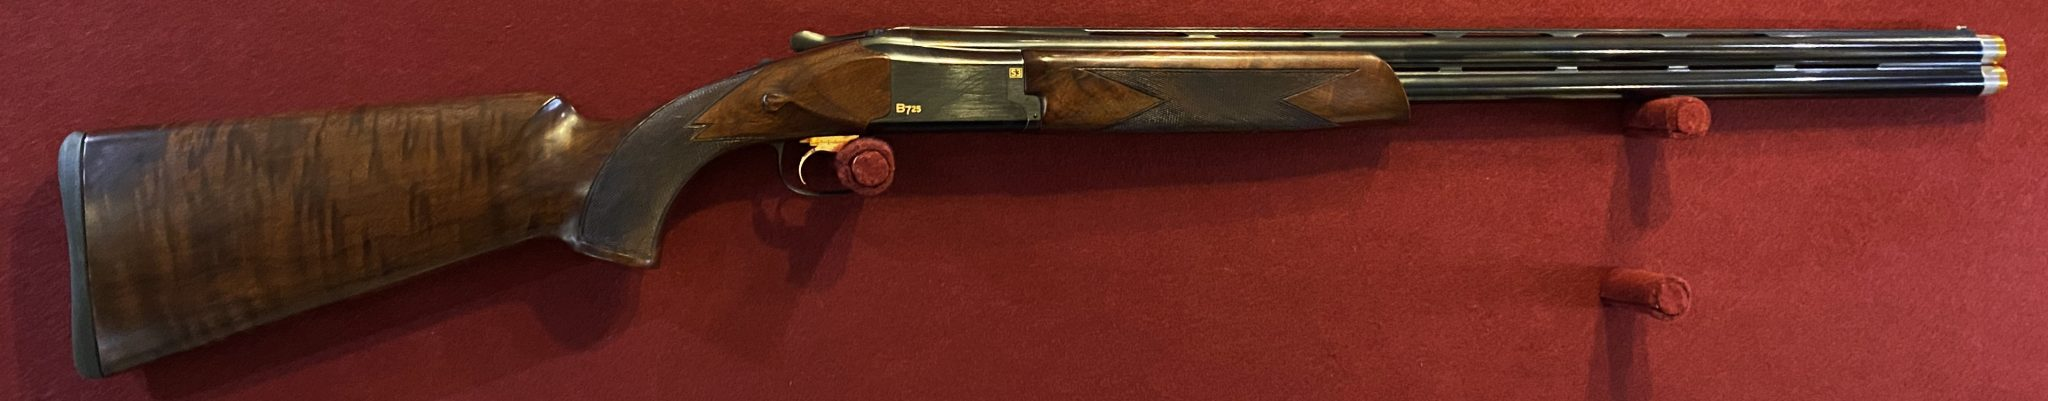 Browning 725 S3